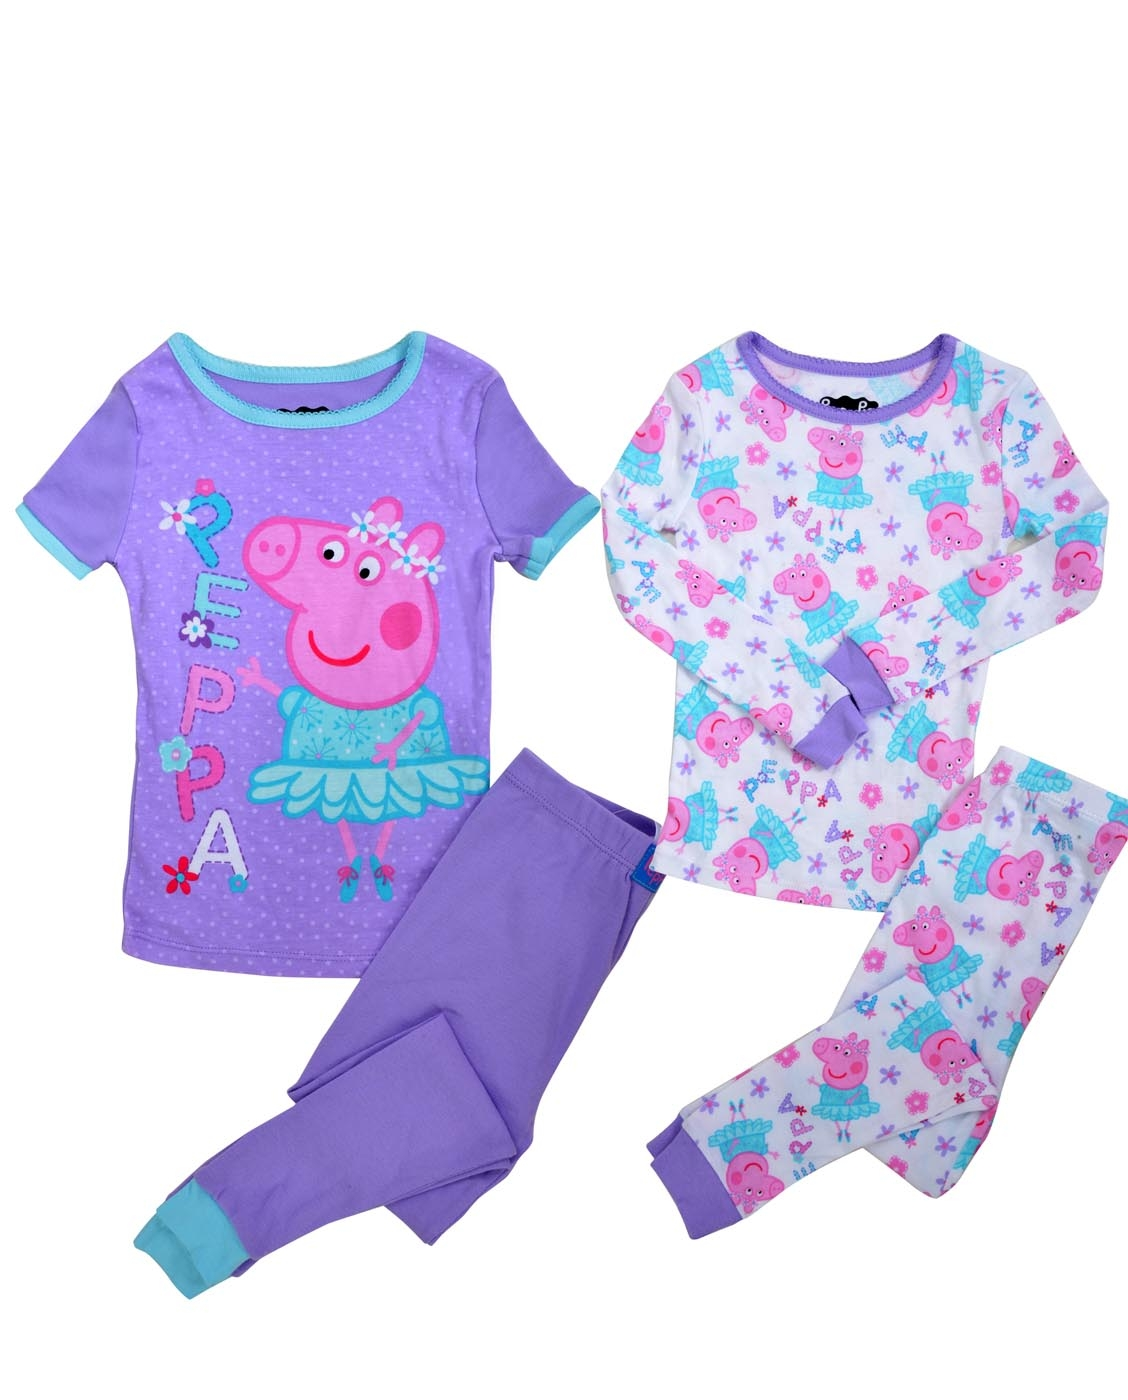 PEPPA PIG GIRLS' BALLERINA 4-PIECE PAJAMA SET